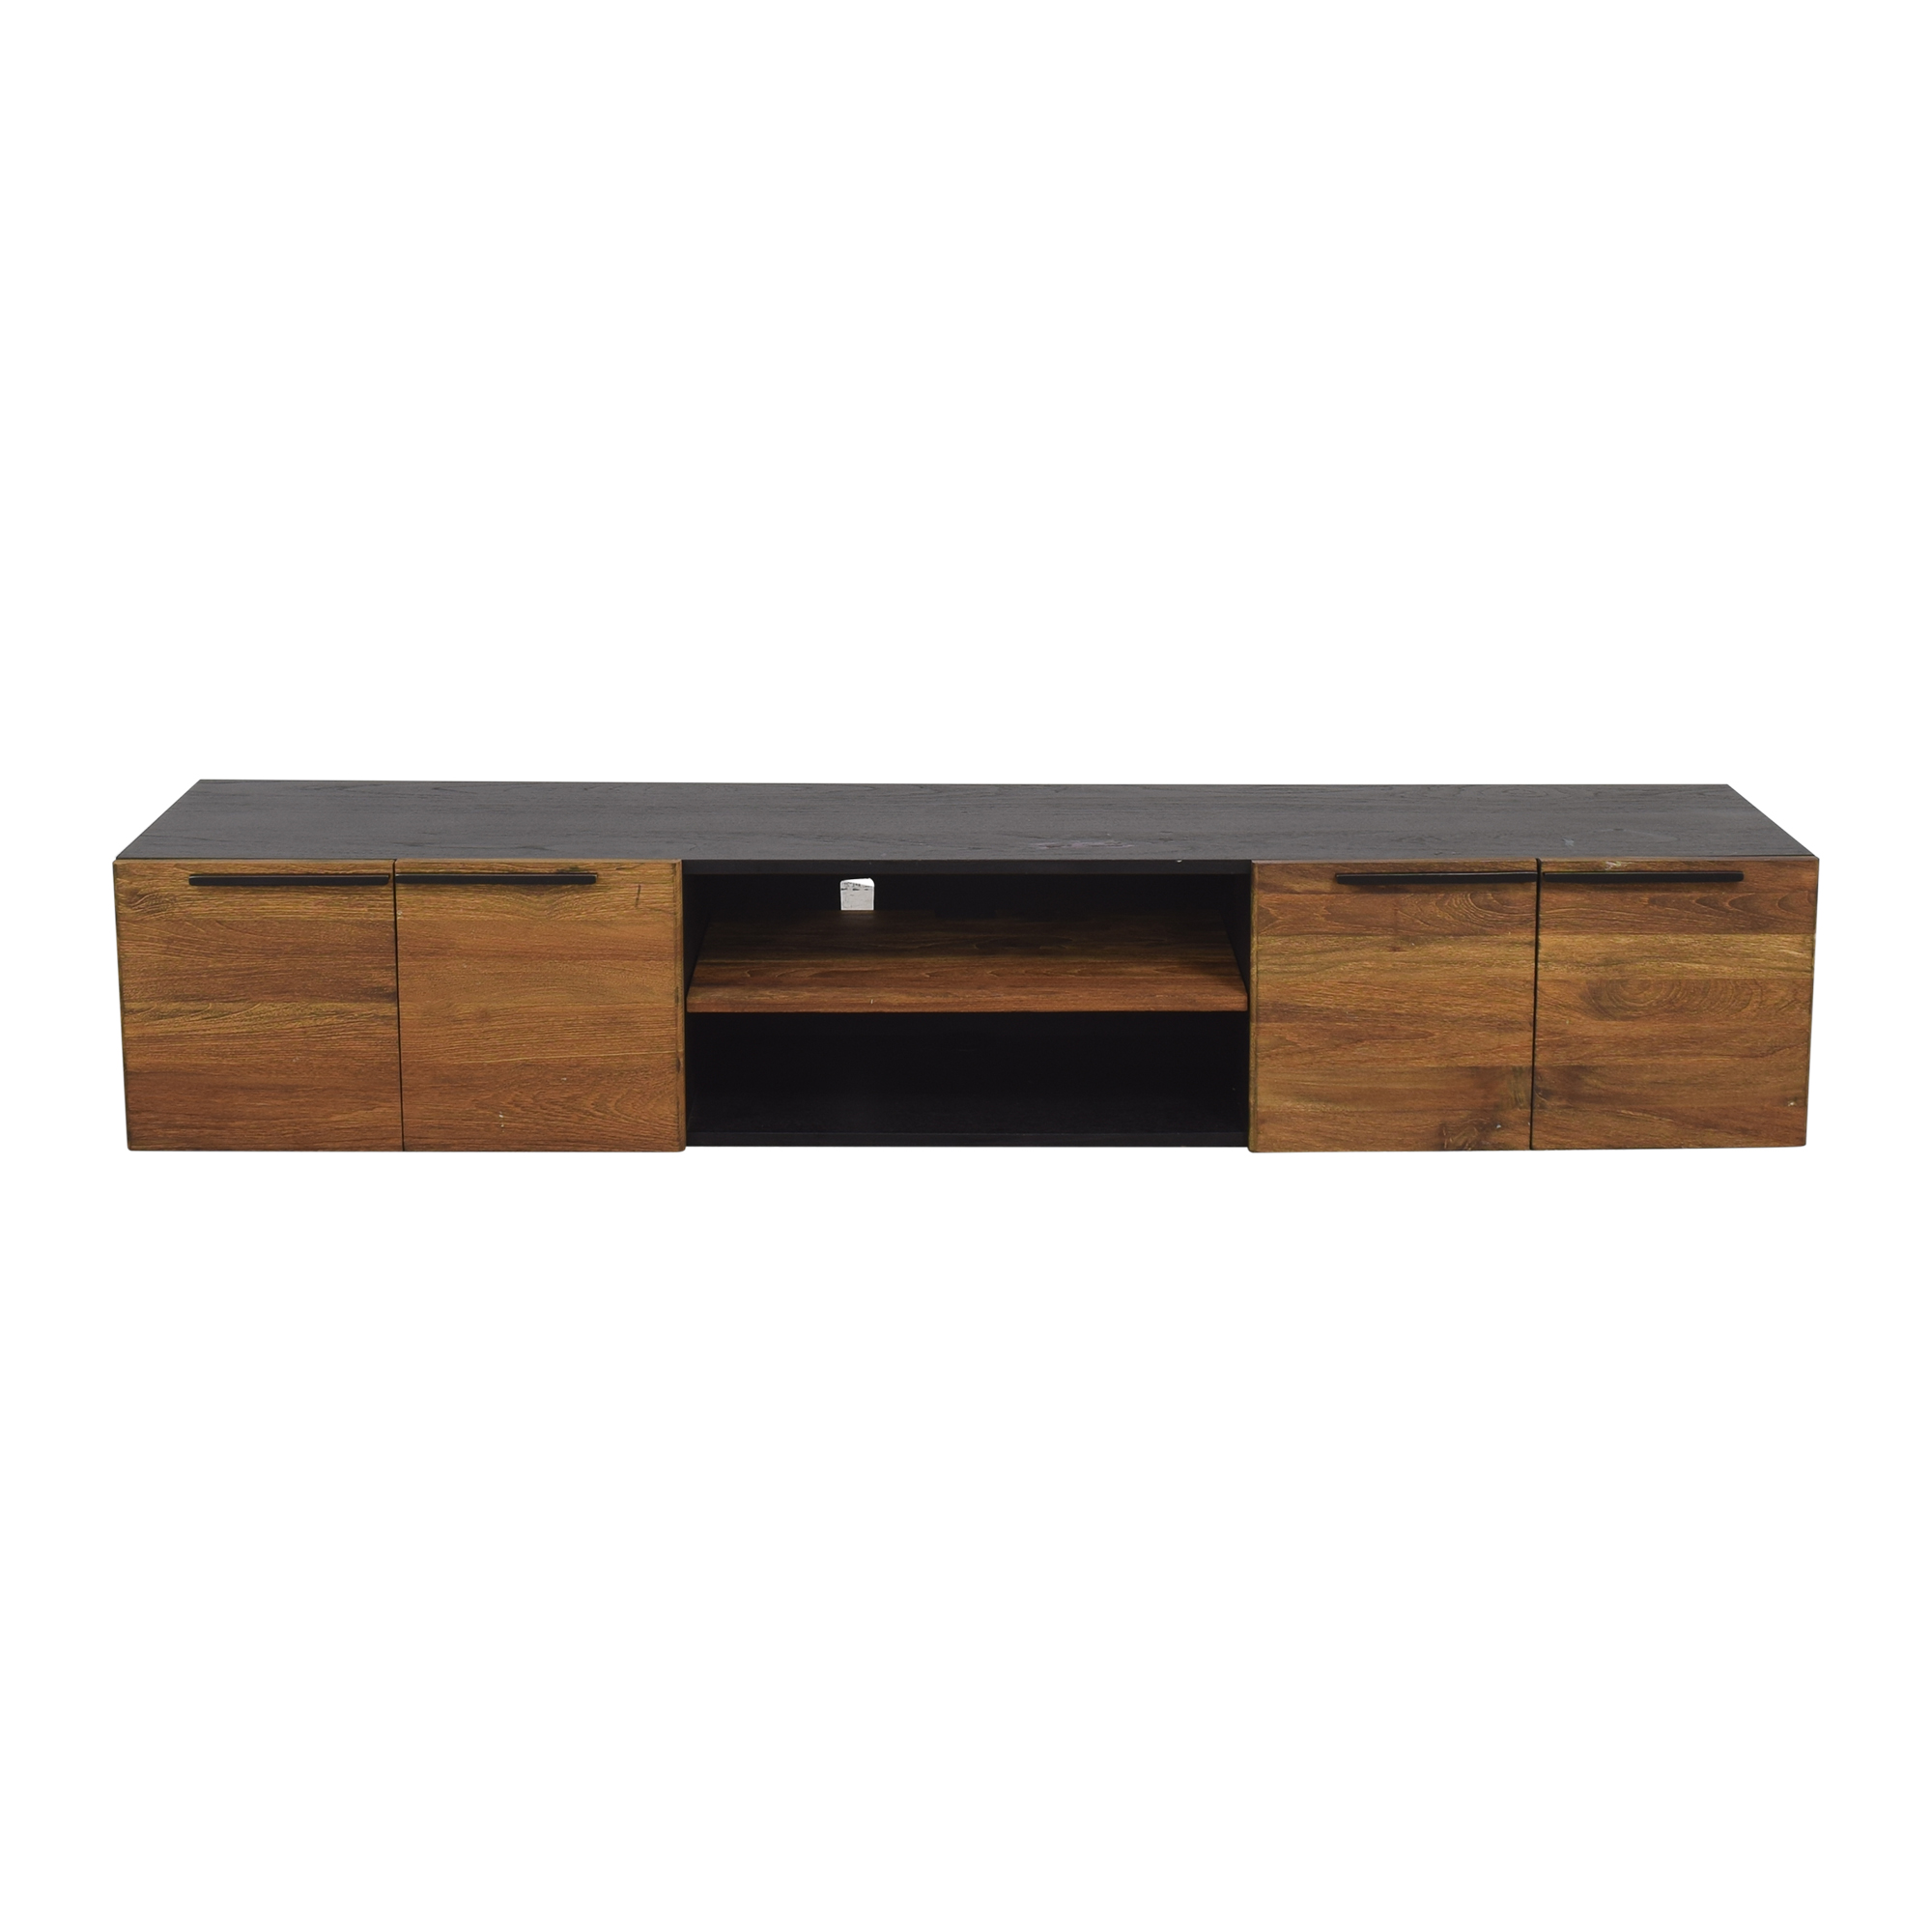 Crate & Barrel Crate & Barrel Rigby Large Floating Media Console used